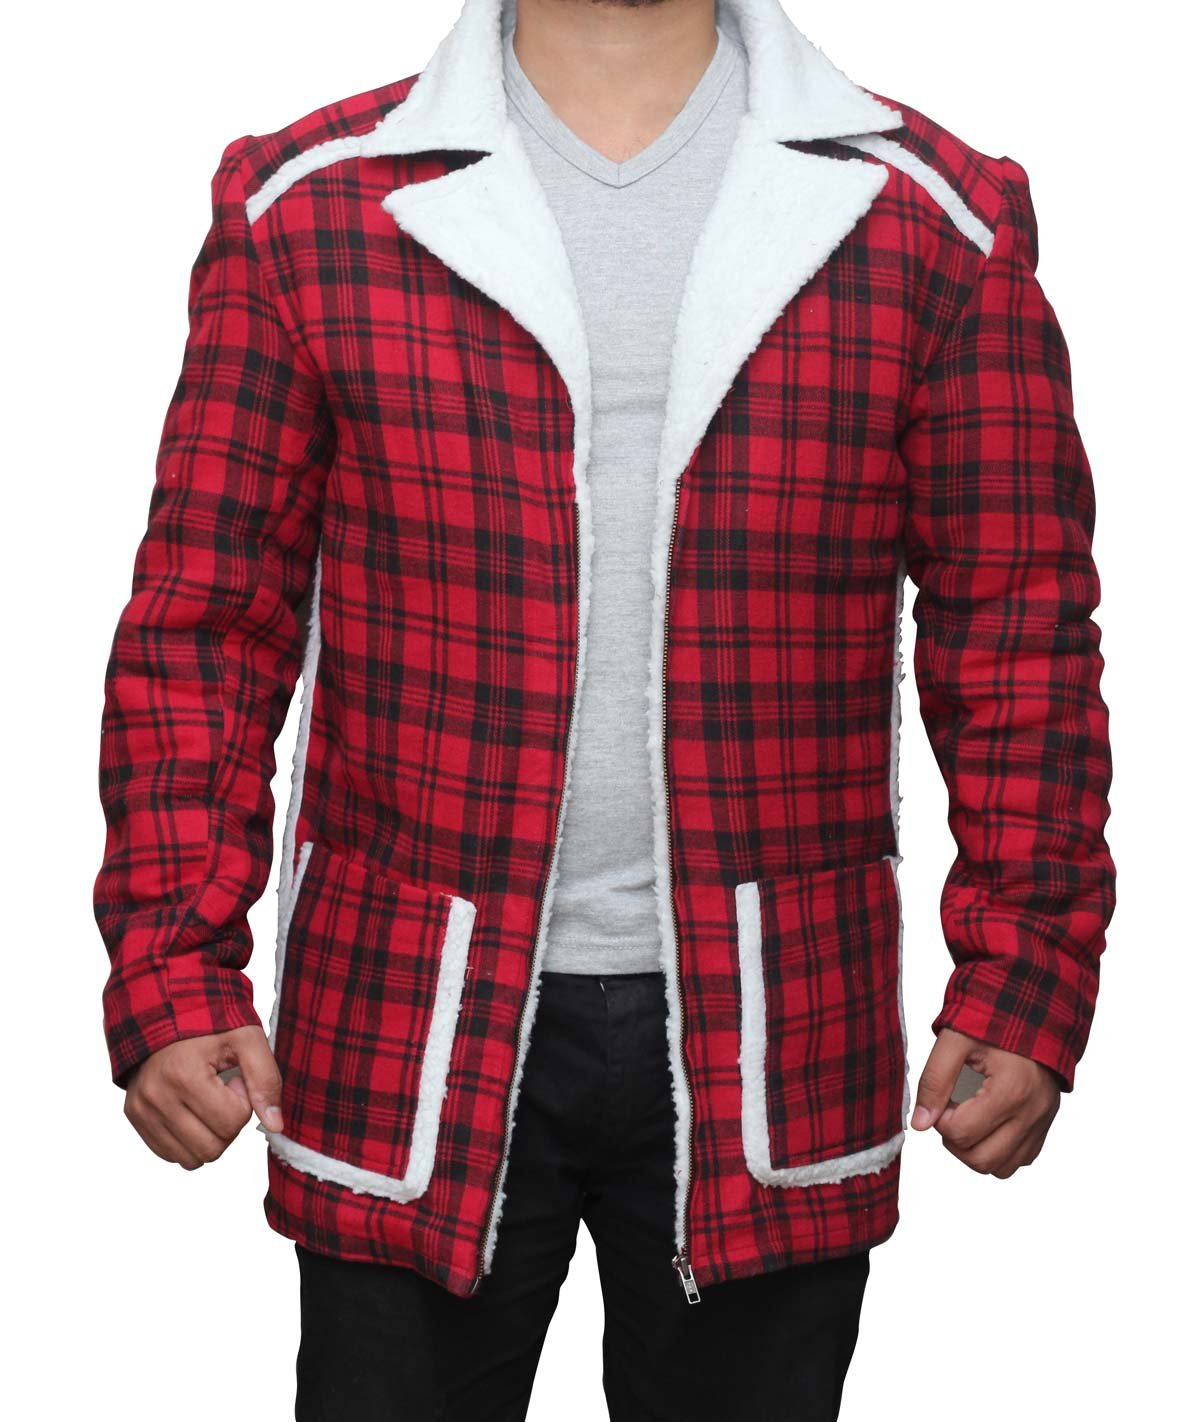 Deadpool Ryan Reynolds Red cotton flannel Shearling Jacket 3XL by fjackets (Image #1)